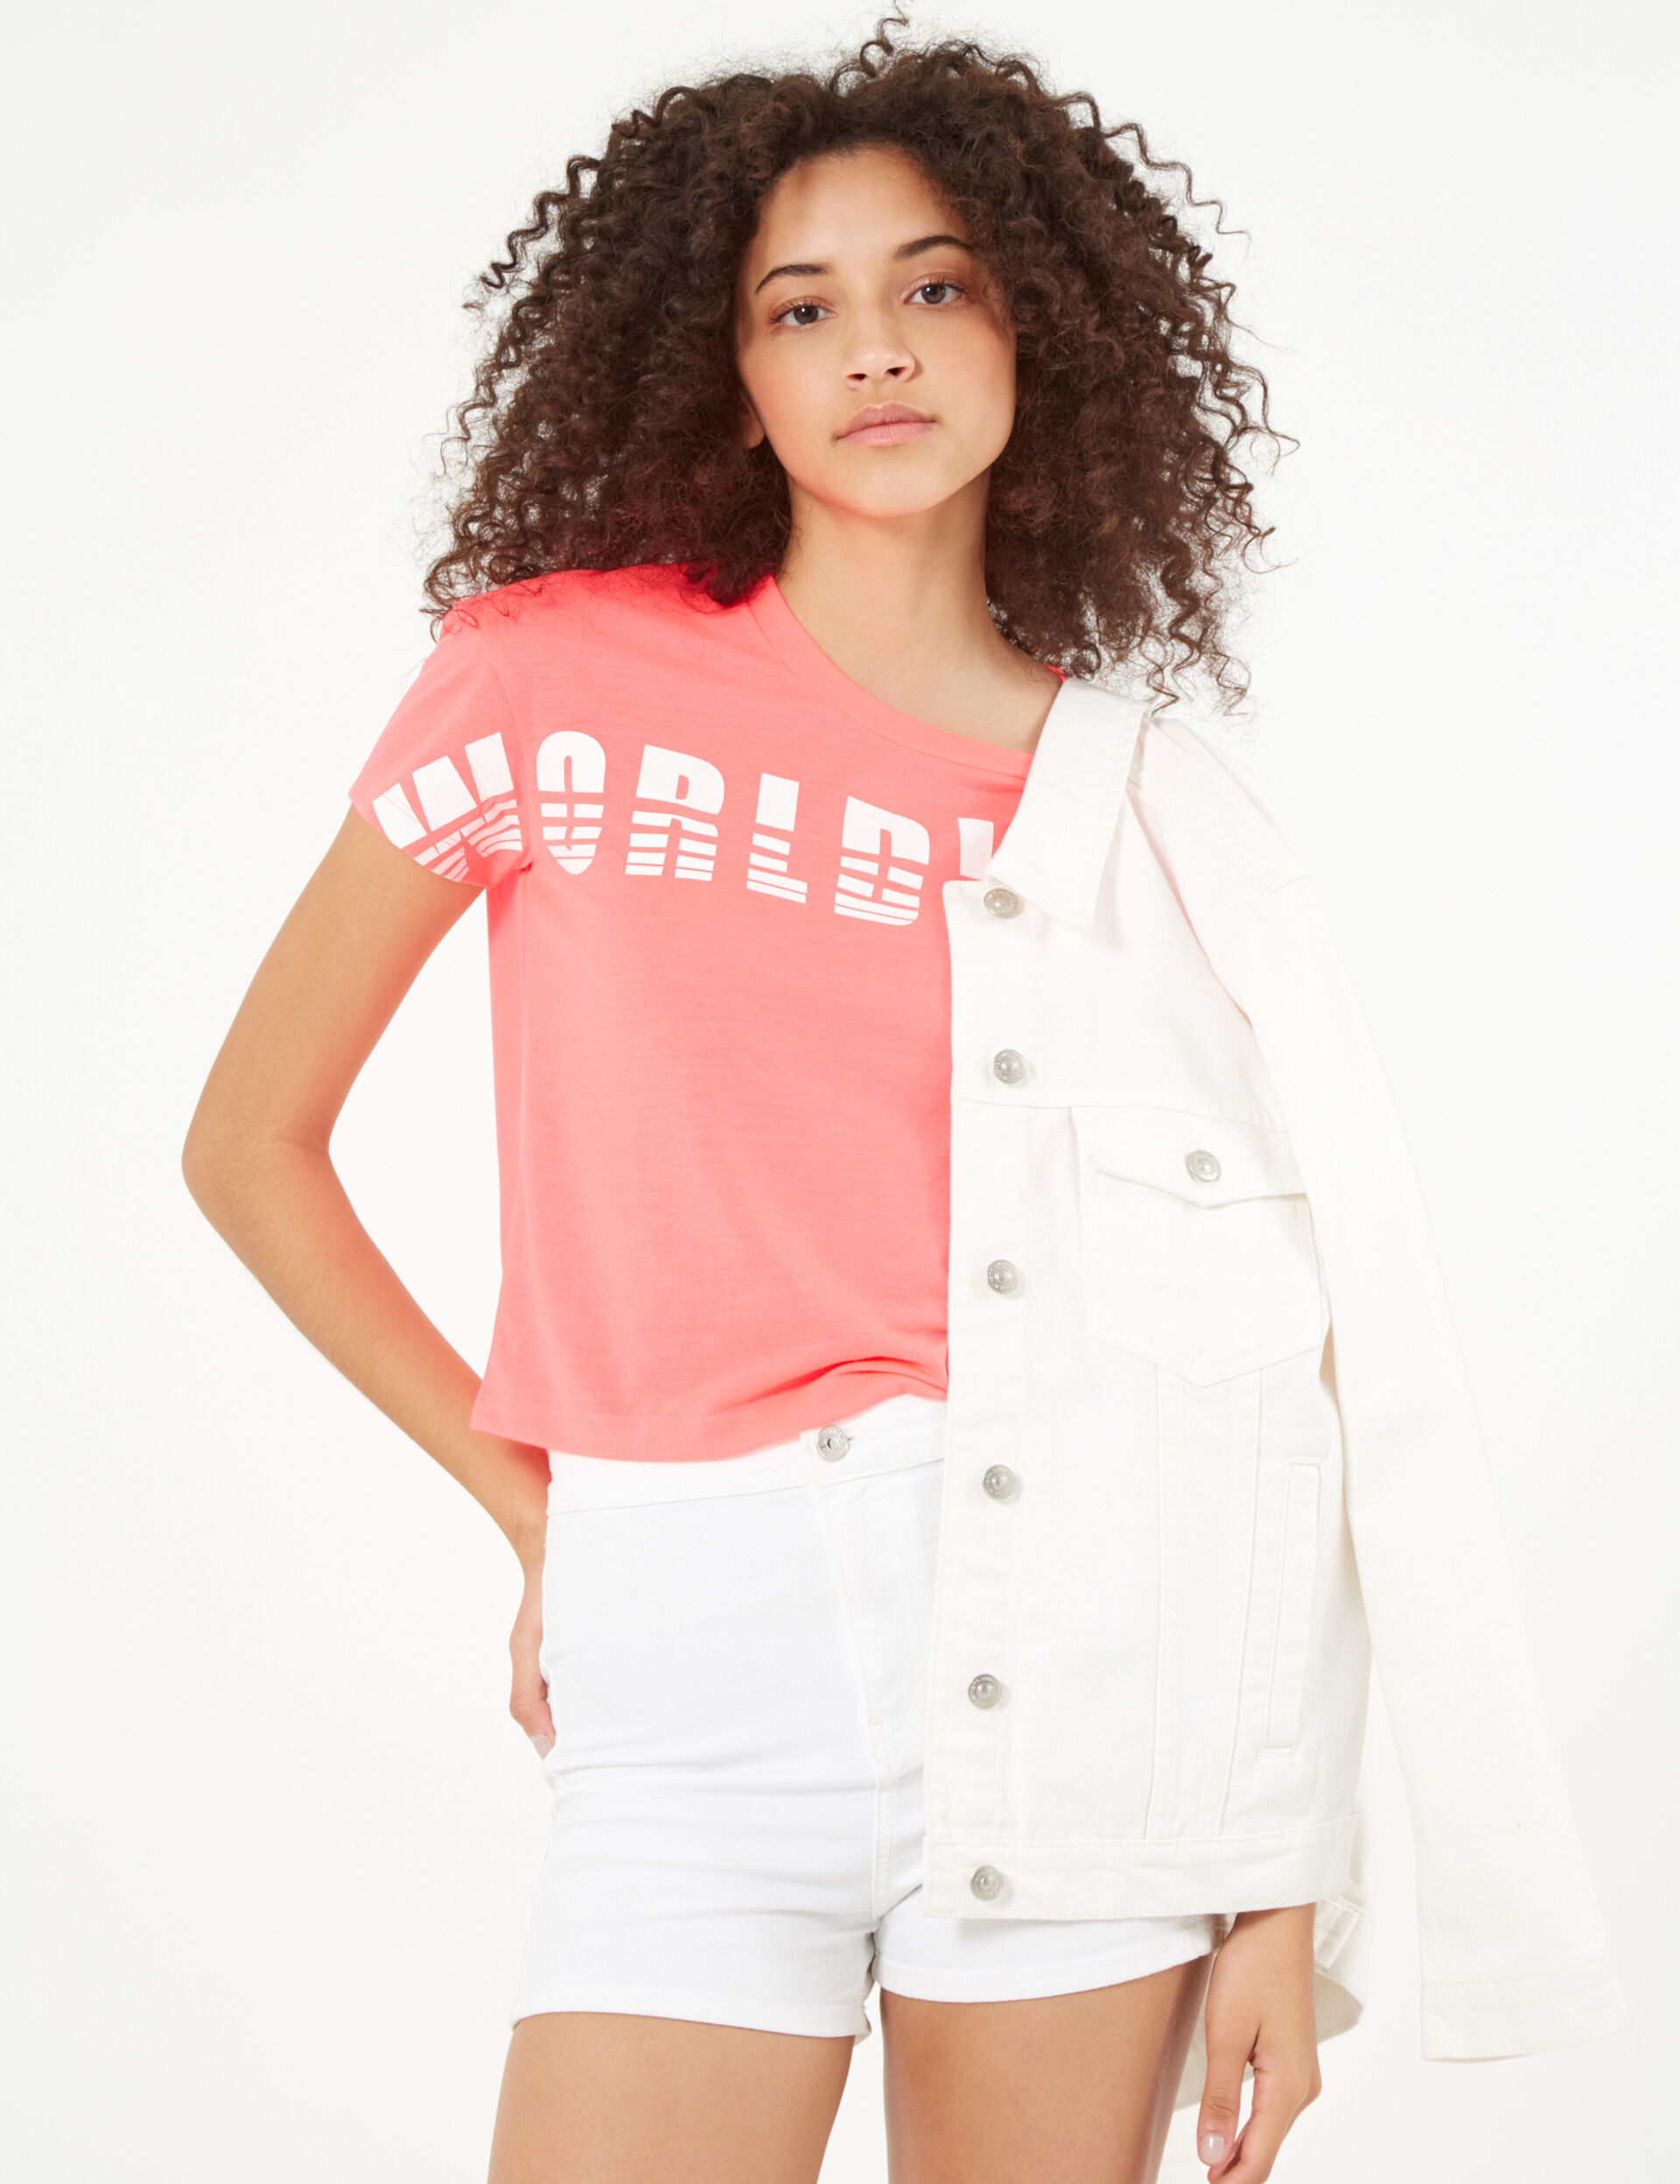 Tee-shirt world wide rose fluo et blanc